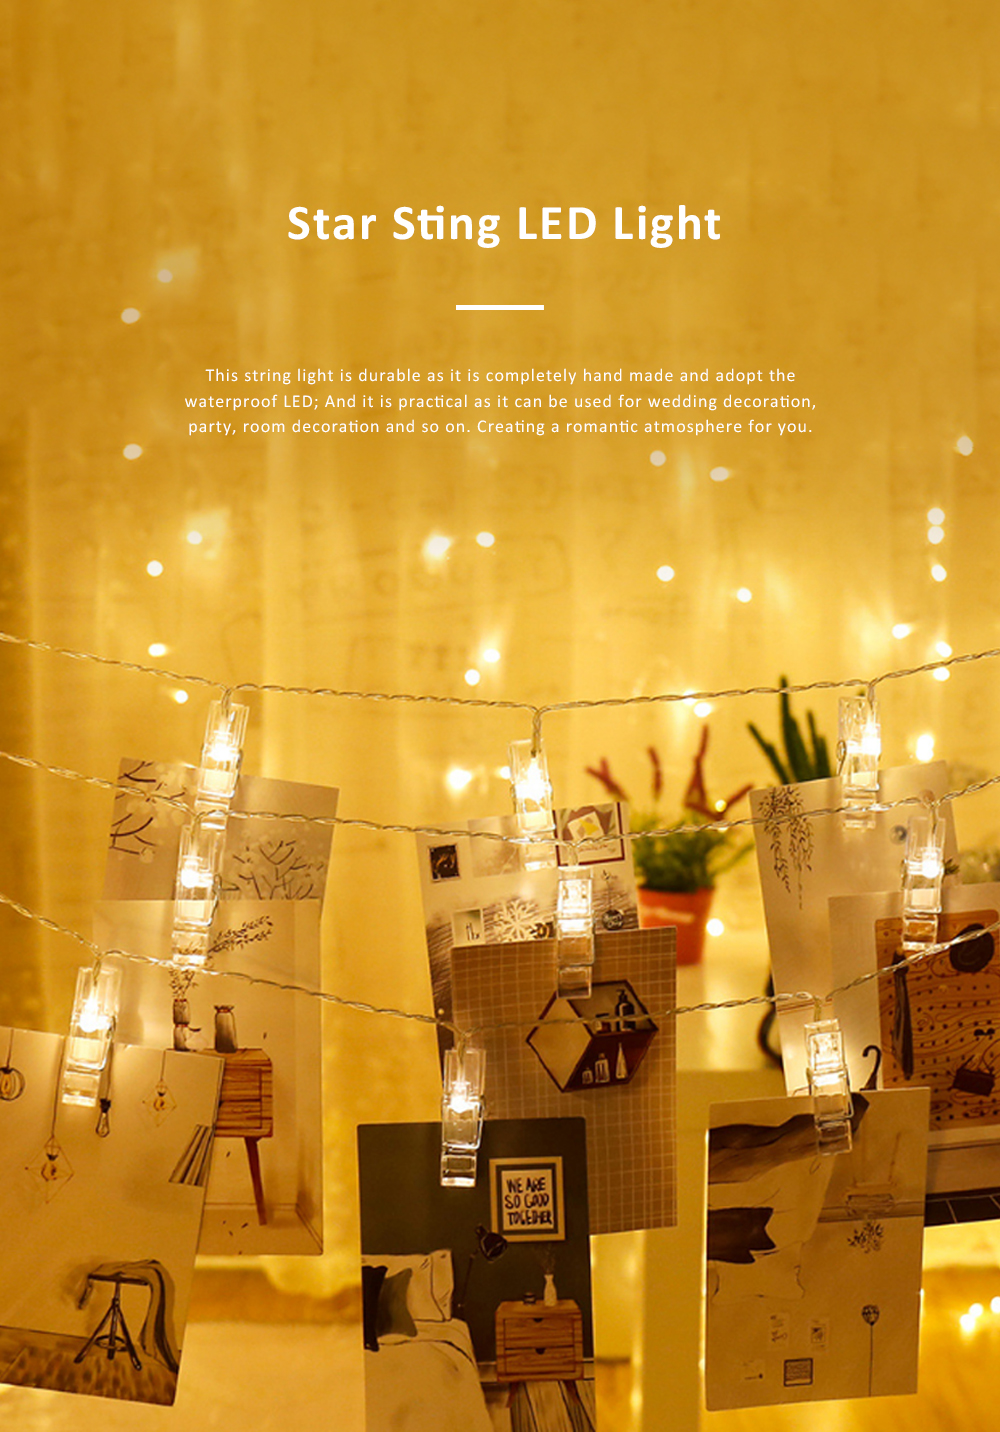 Led Star String Lights with Battery Powered Waterproof Clip String Postcard Photo Decoration Light for Indoor Outdoor Wedding Party Wall Garden 0